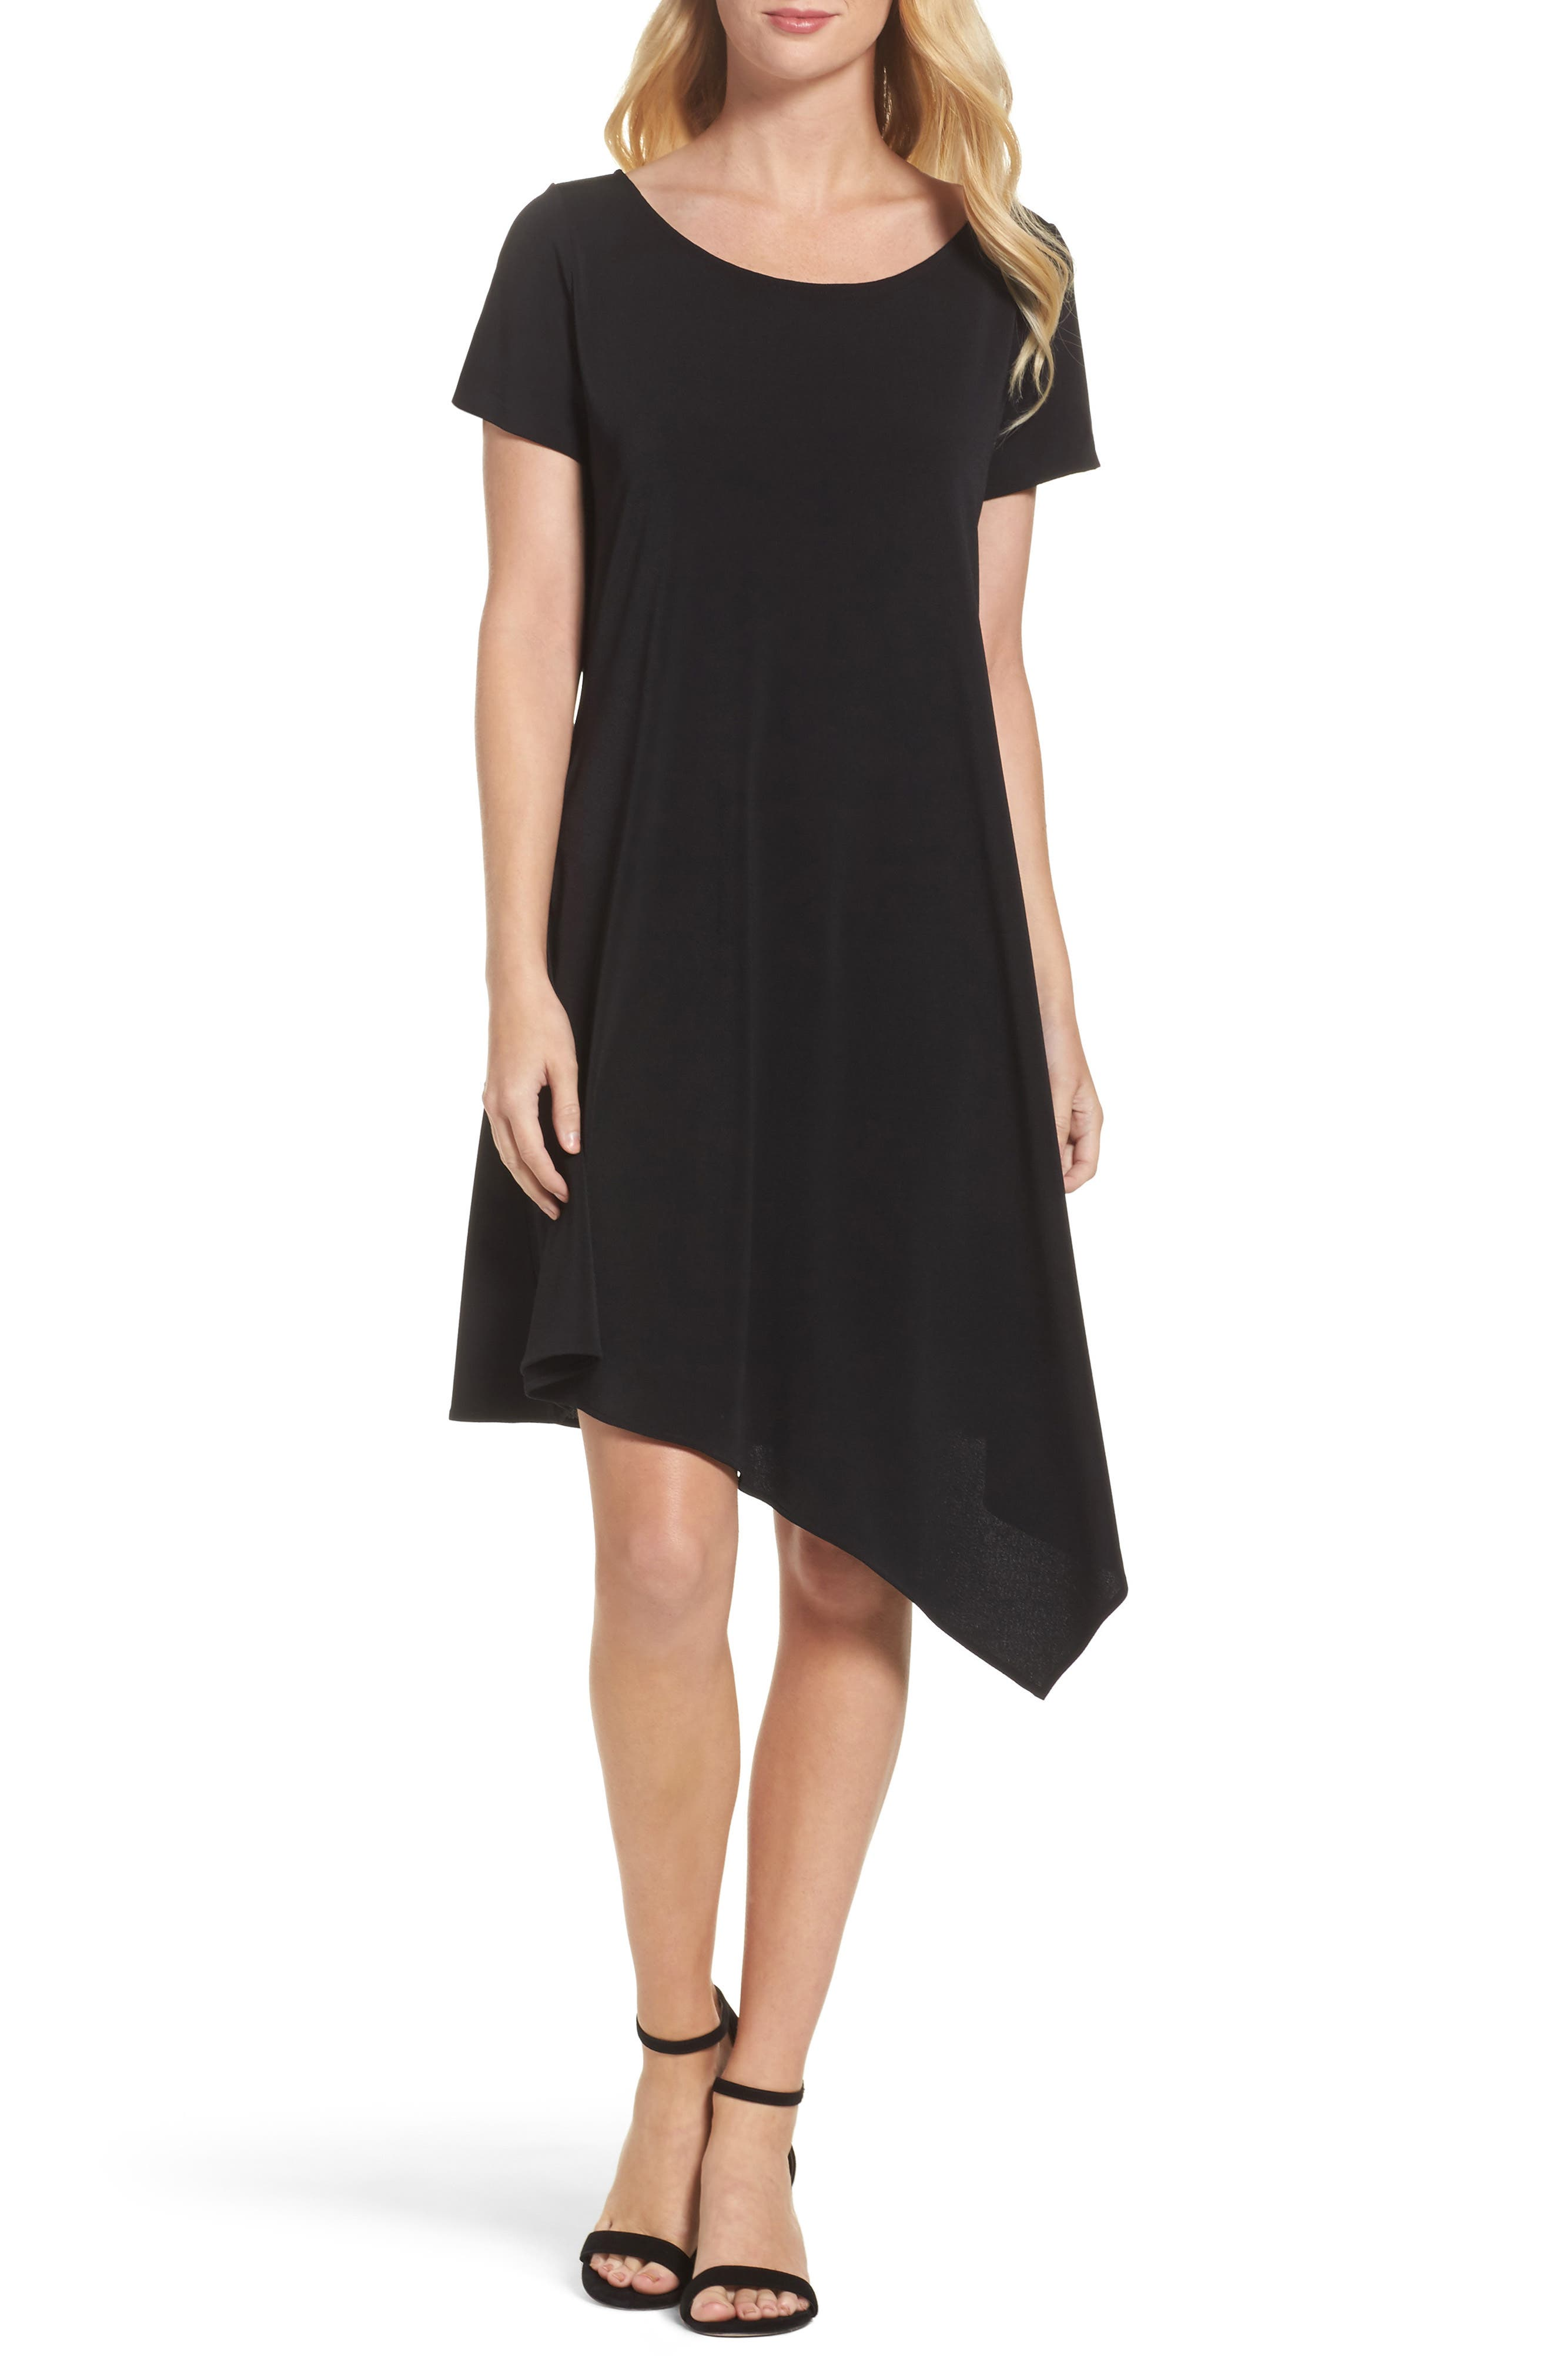 Darien Asymmetrical Dress,                         Main,                         color, Black Crepe